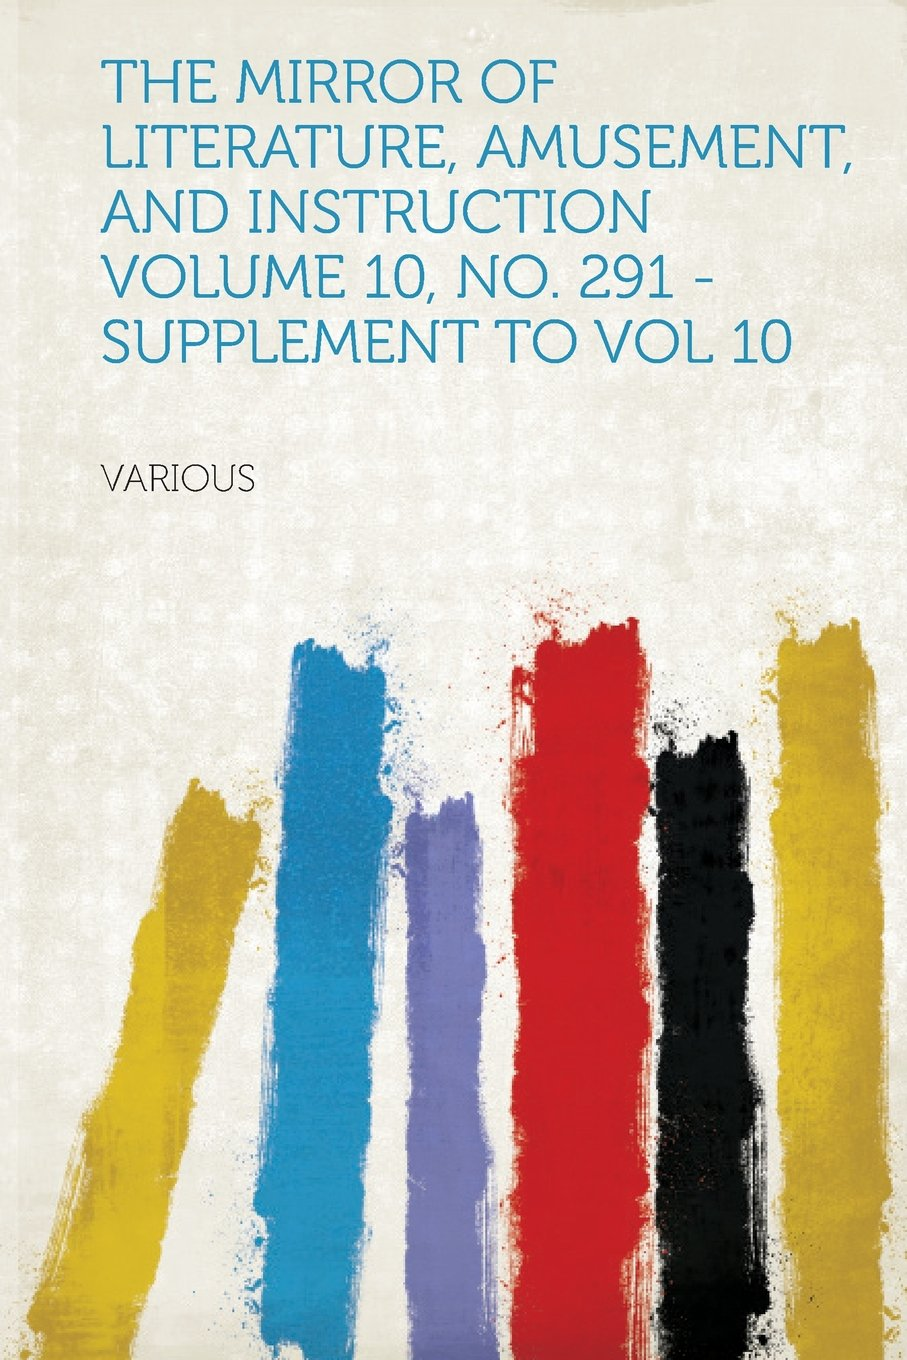 Download The Mirror of Literature, Amusement, and Instruction Volume 10, No. 291 - Supplement to Vol 10 PDF